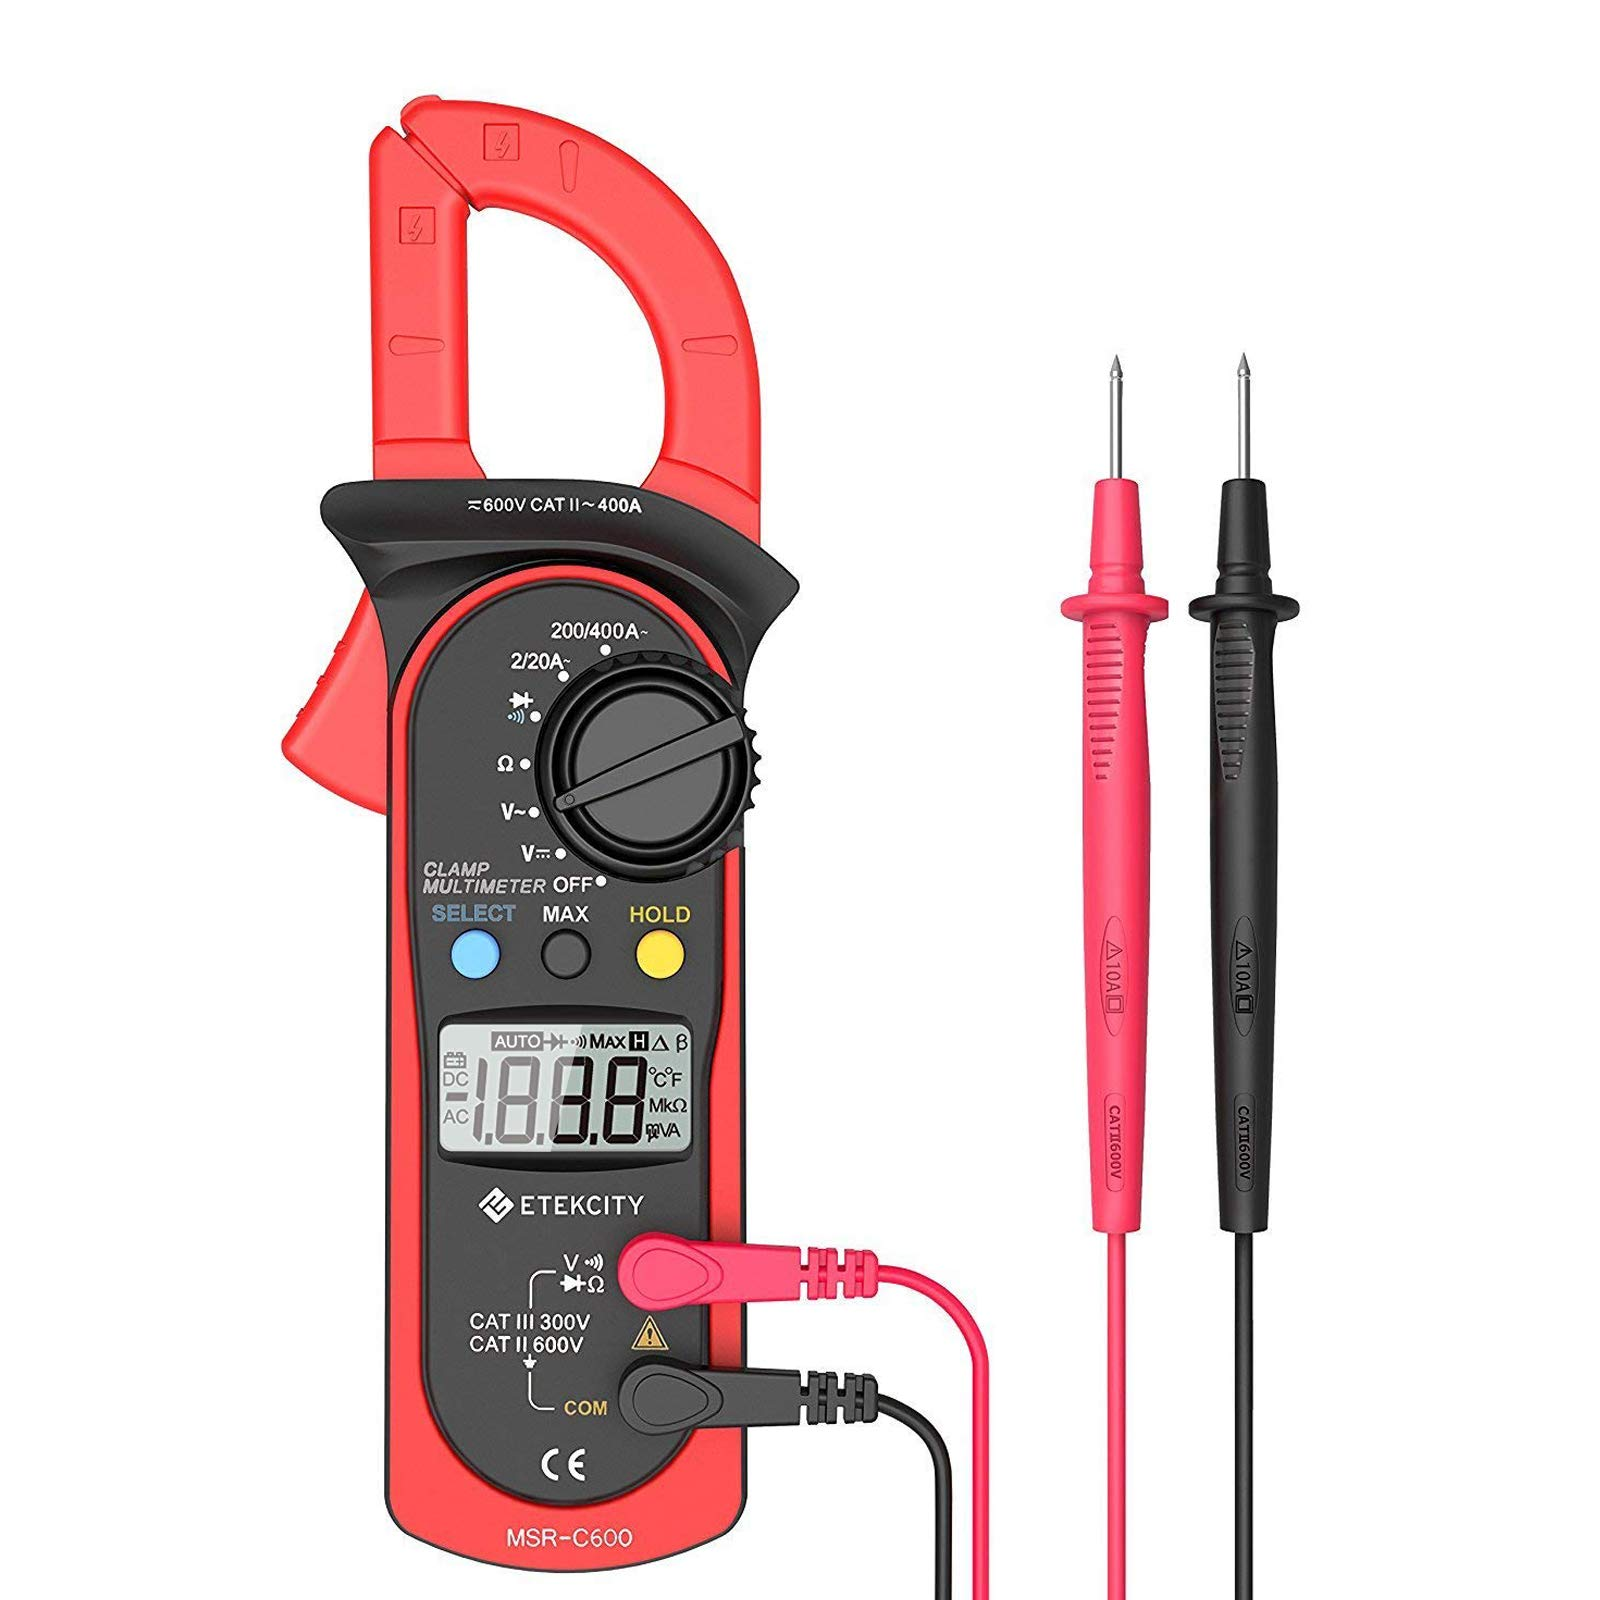 Etekcity Auto-Ranging Clamp Meter